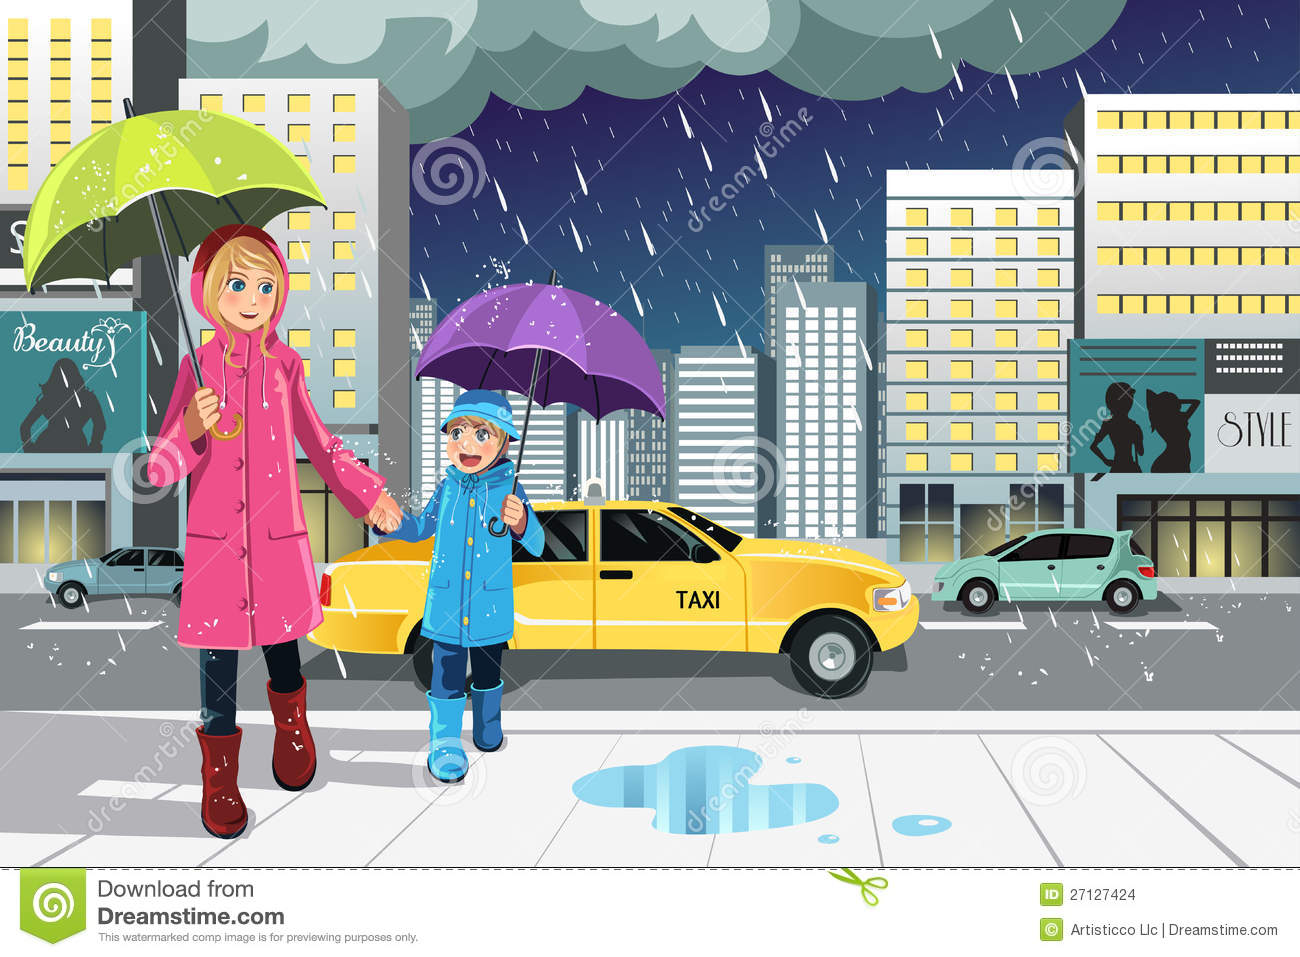 Rainy season clipart 20 free Cliparts | Download images on ...